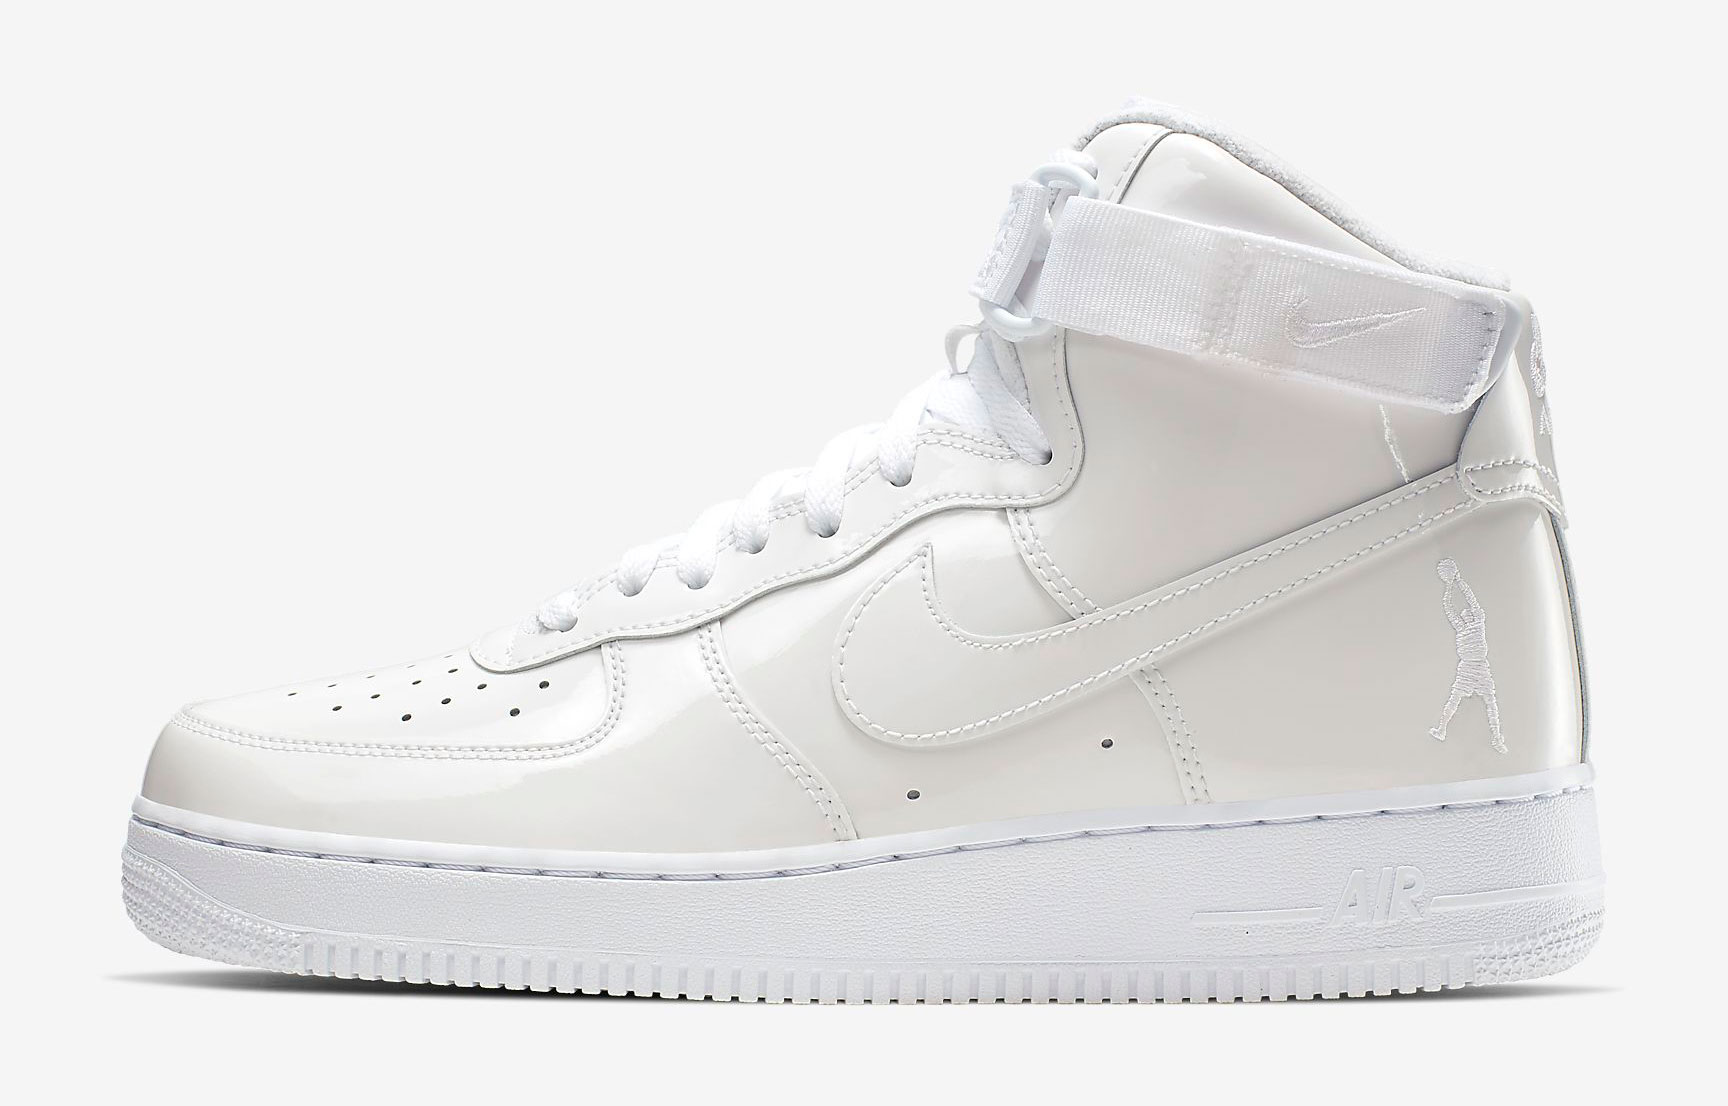 nike-air-force-1-high-sheed-triple-white-release-date-where-to-buy